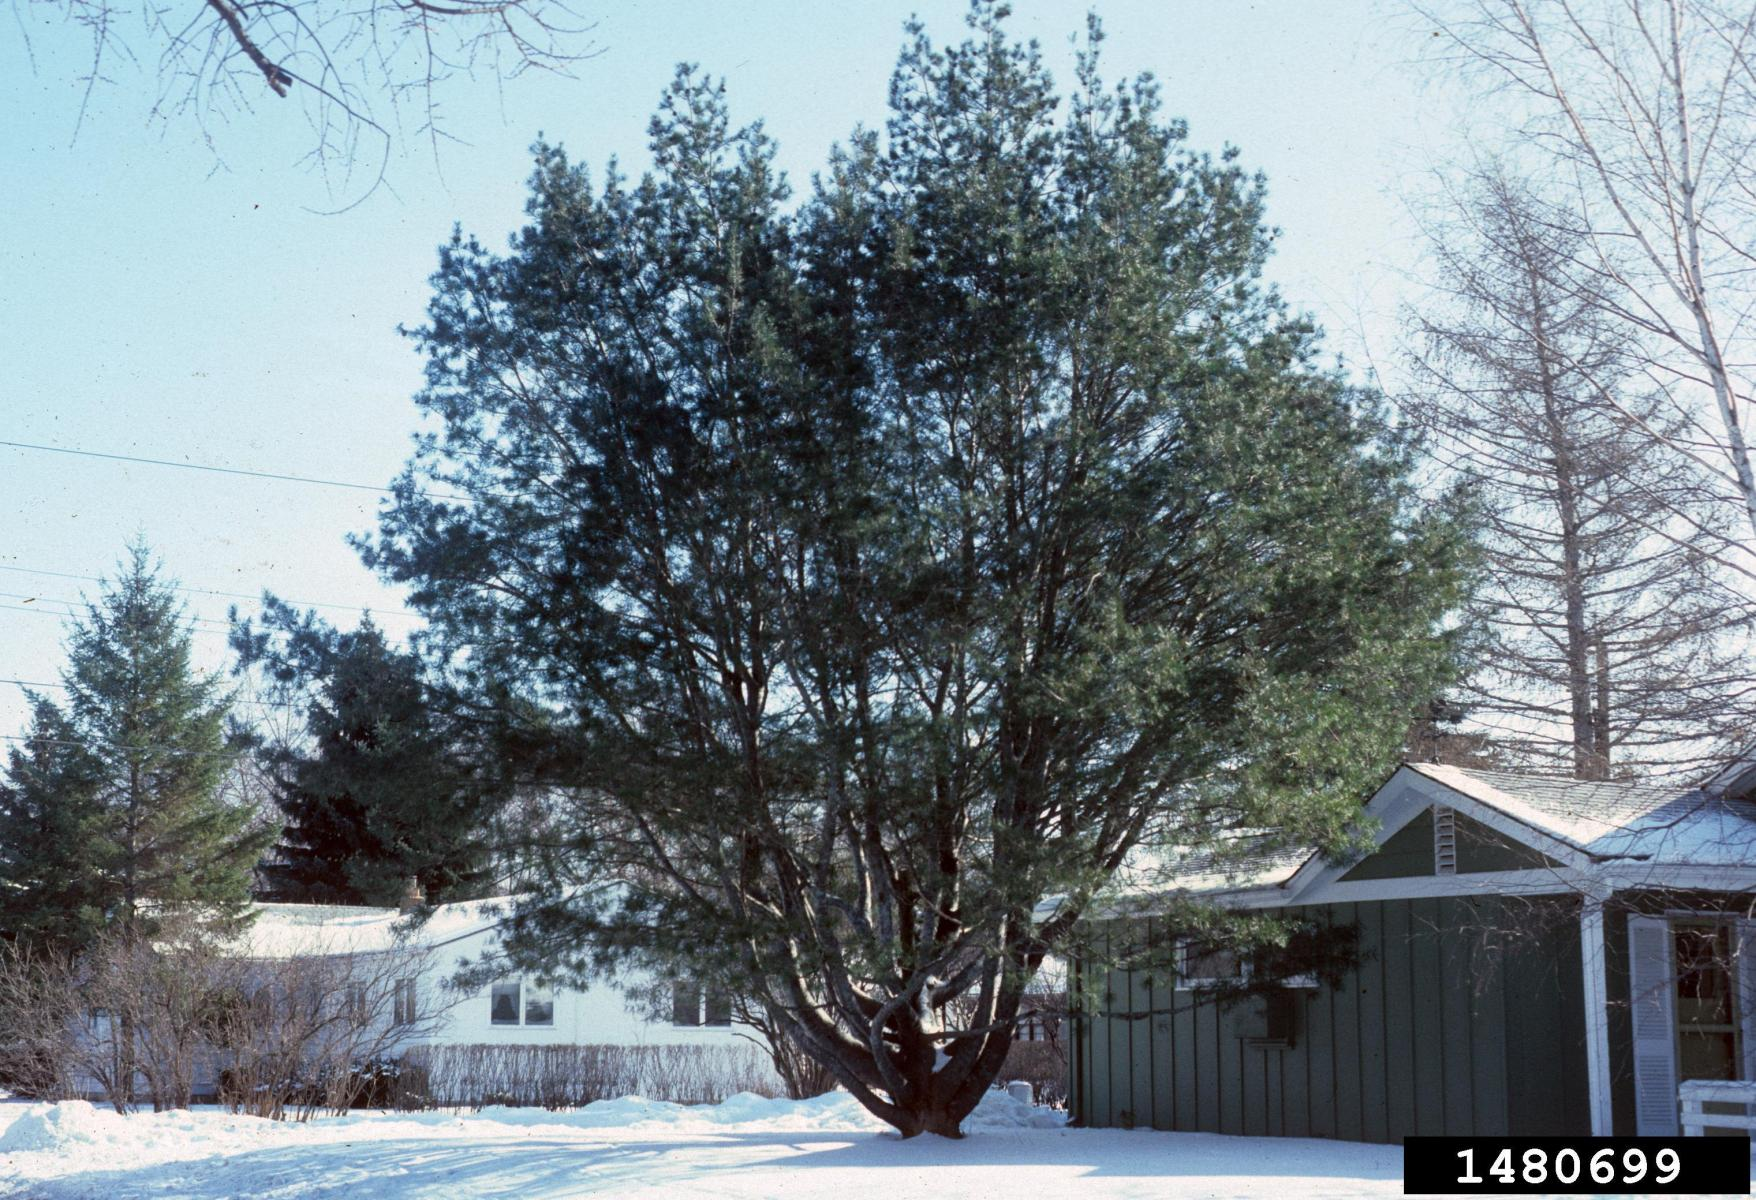 The photo of the Lacebark pine on the left is from: Richard Webb, Bugwood.org